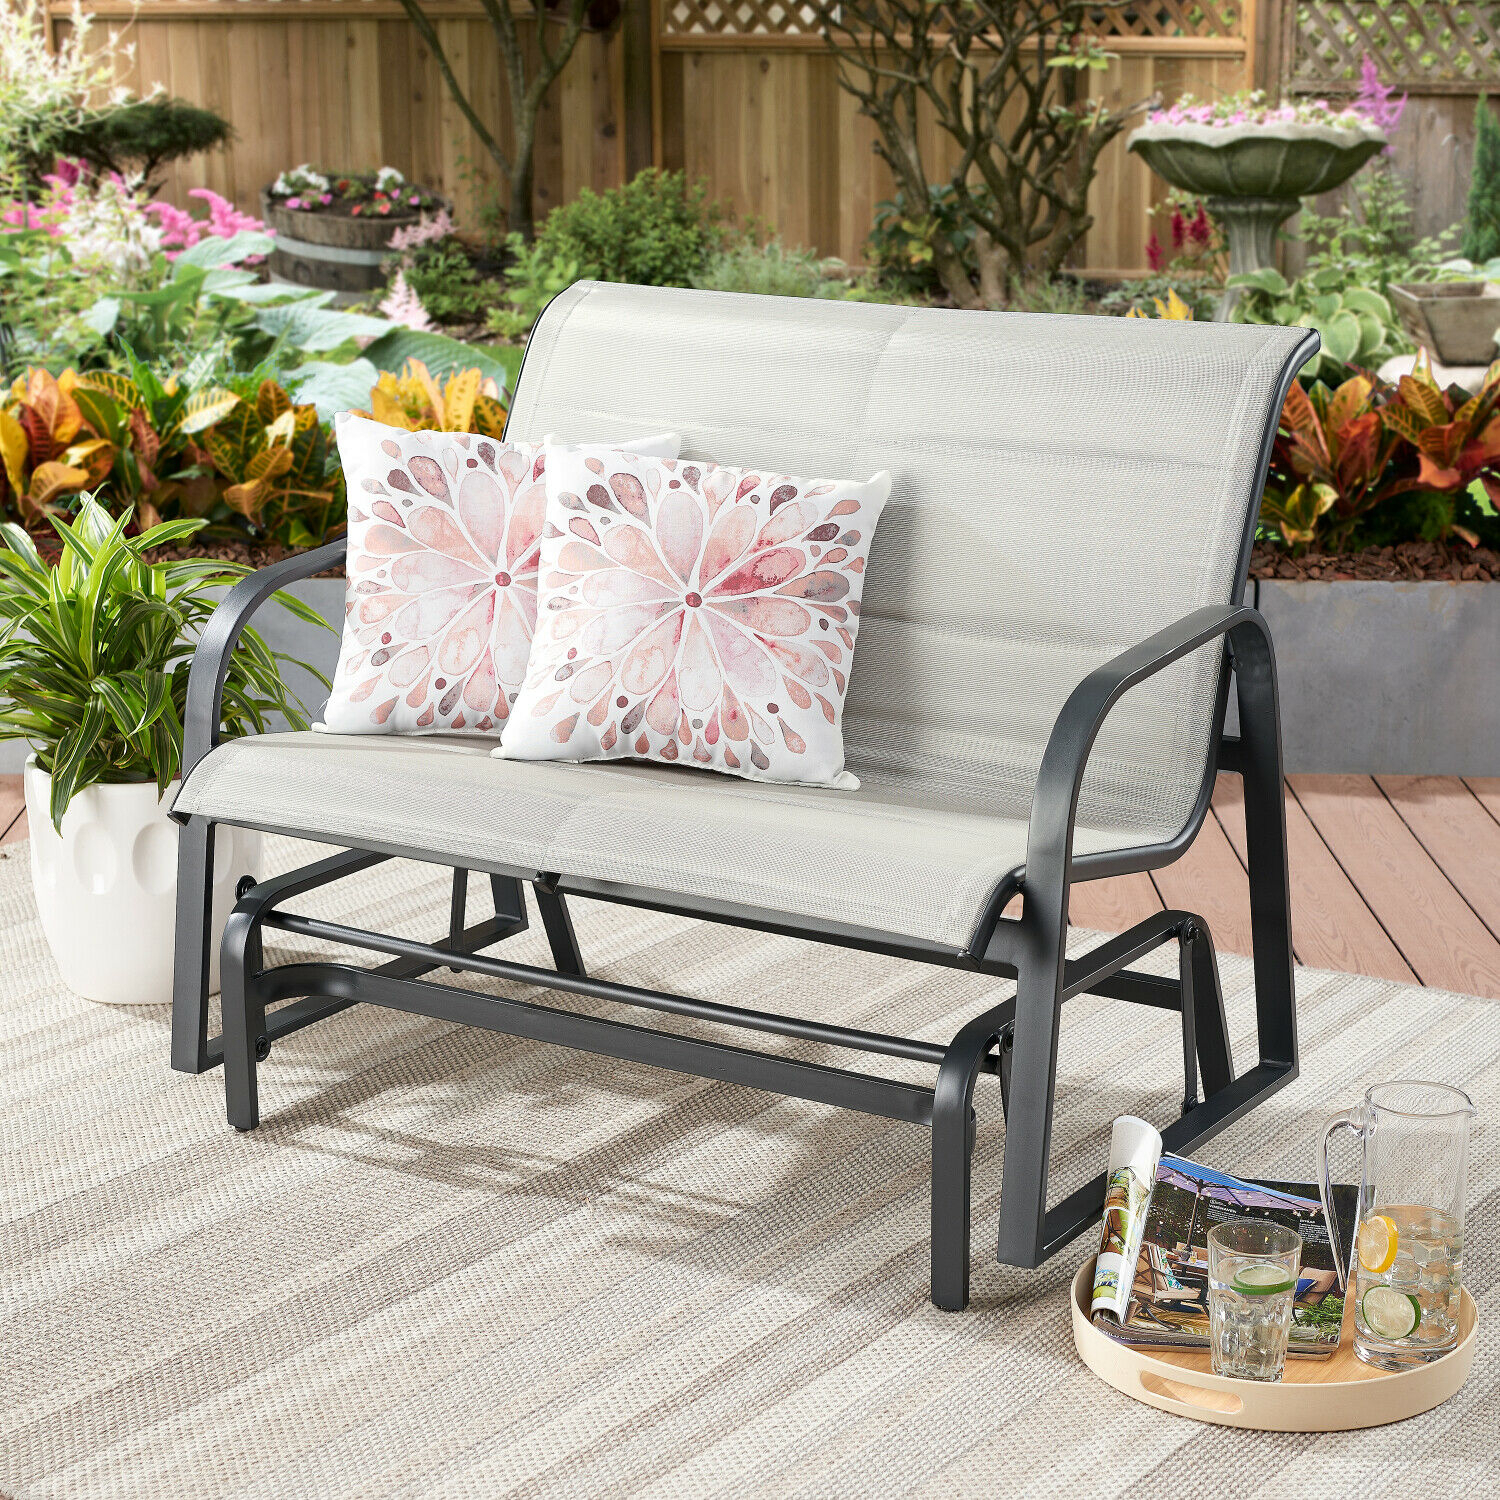 25 Photos Padded Sling Double Glider Benches Patio